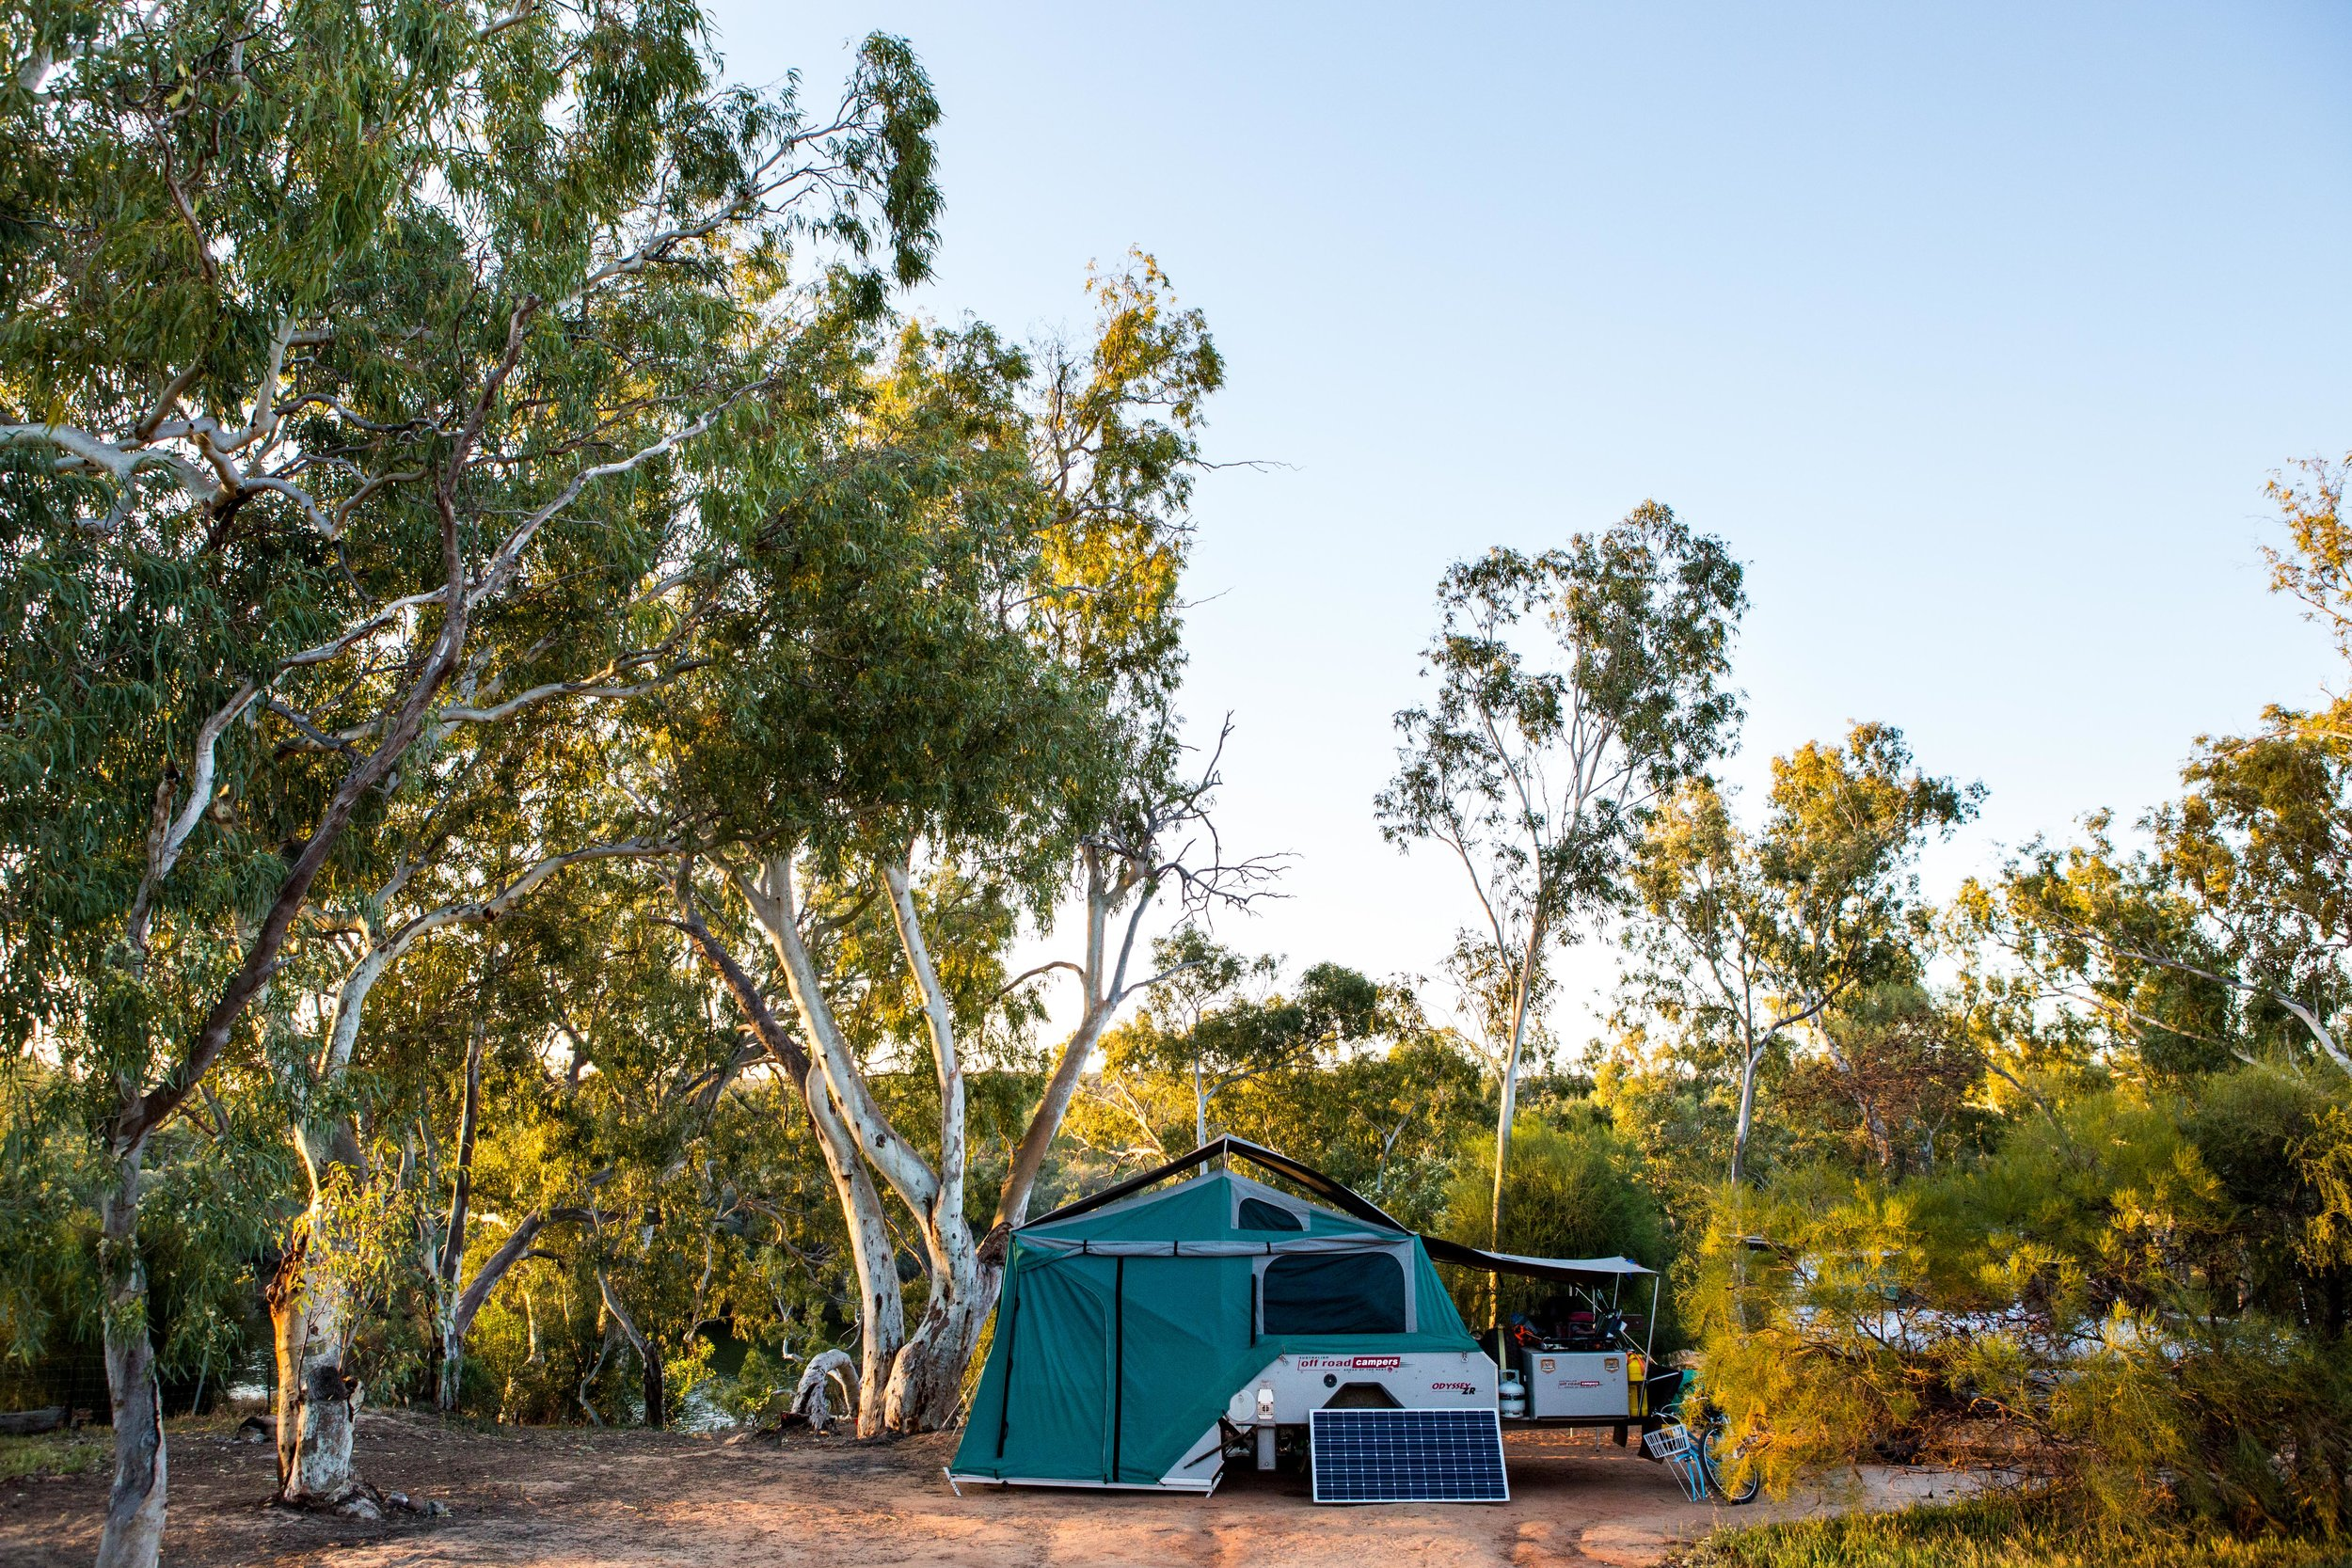 Our camp set up at the beautiful Murchison House Station, just outside Kalbarri in Western Australia